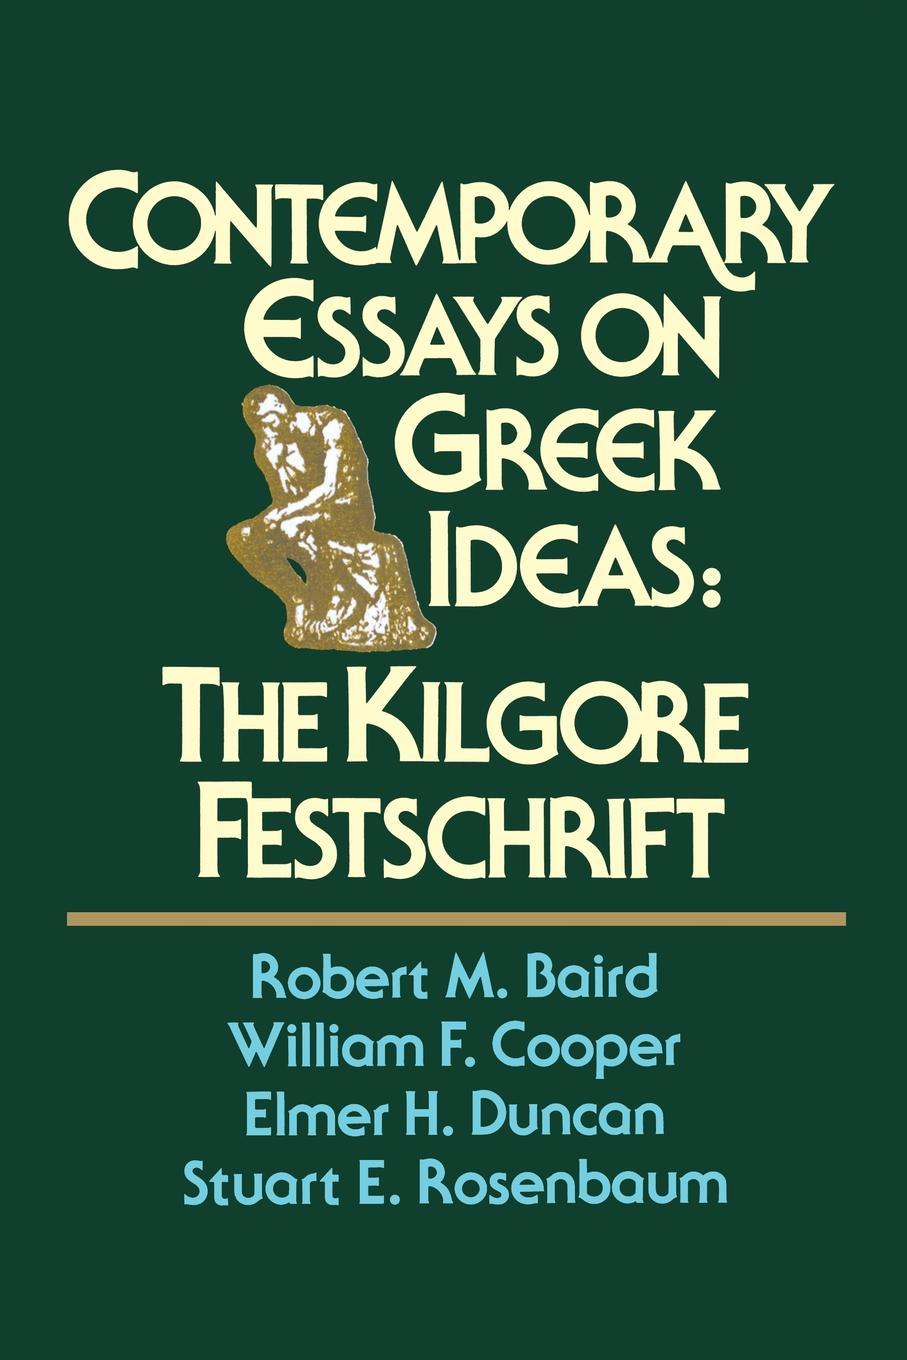 Contemporary Essays on Greek Ideas. The Kilgore Festschrift.